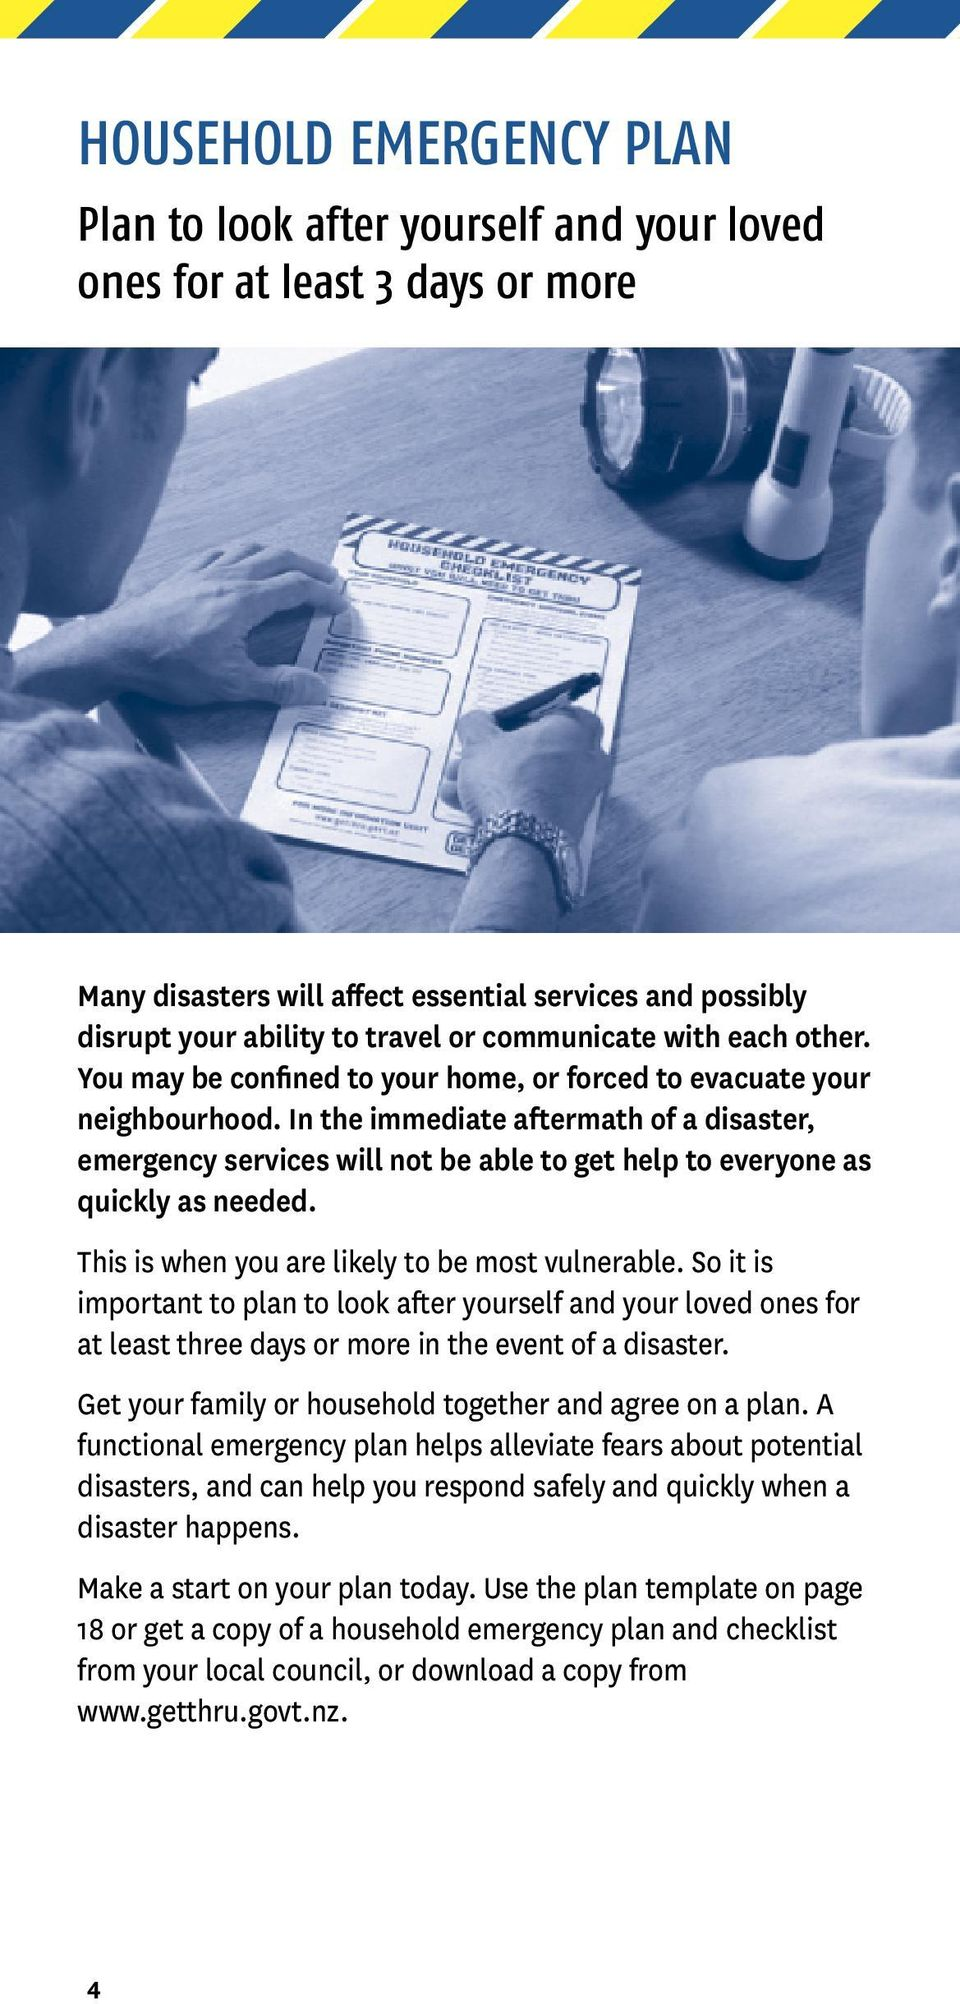 In the immediate aftermath of a disaster, emergency services will not be able to get help to everyone as quickly as needed. This is when you are likely to be most vulnerable.